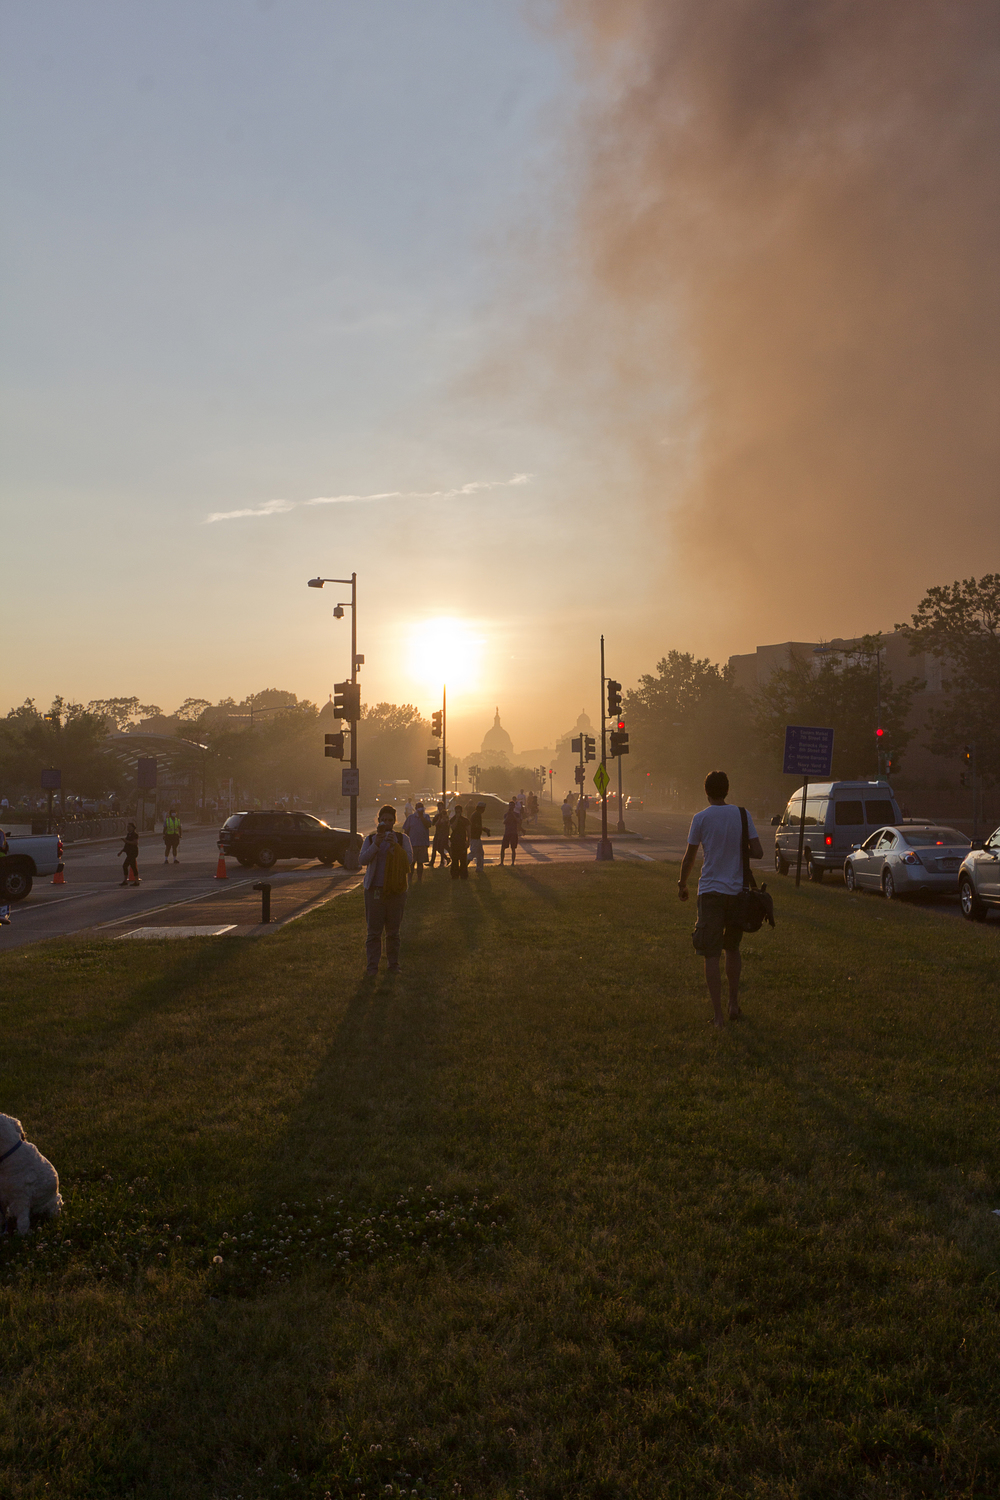 As the wind started to shift, the smoke began to clear away from Pennsylvania Avenue and disperse higher up in the air.